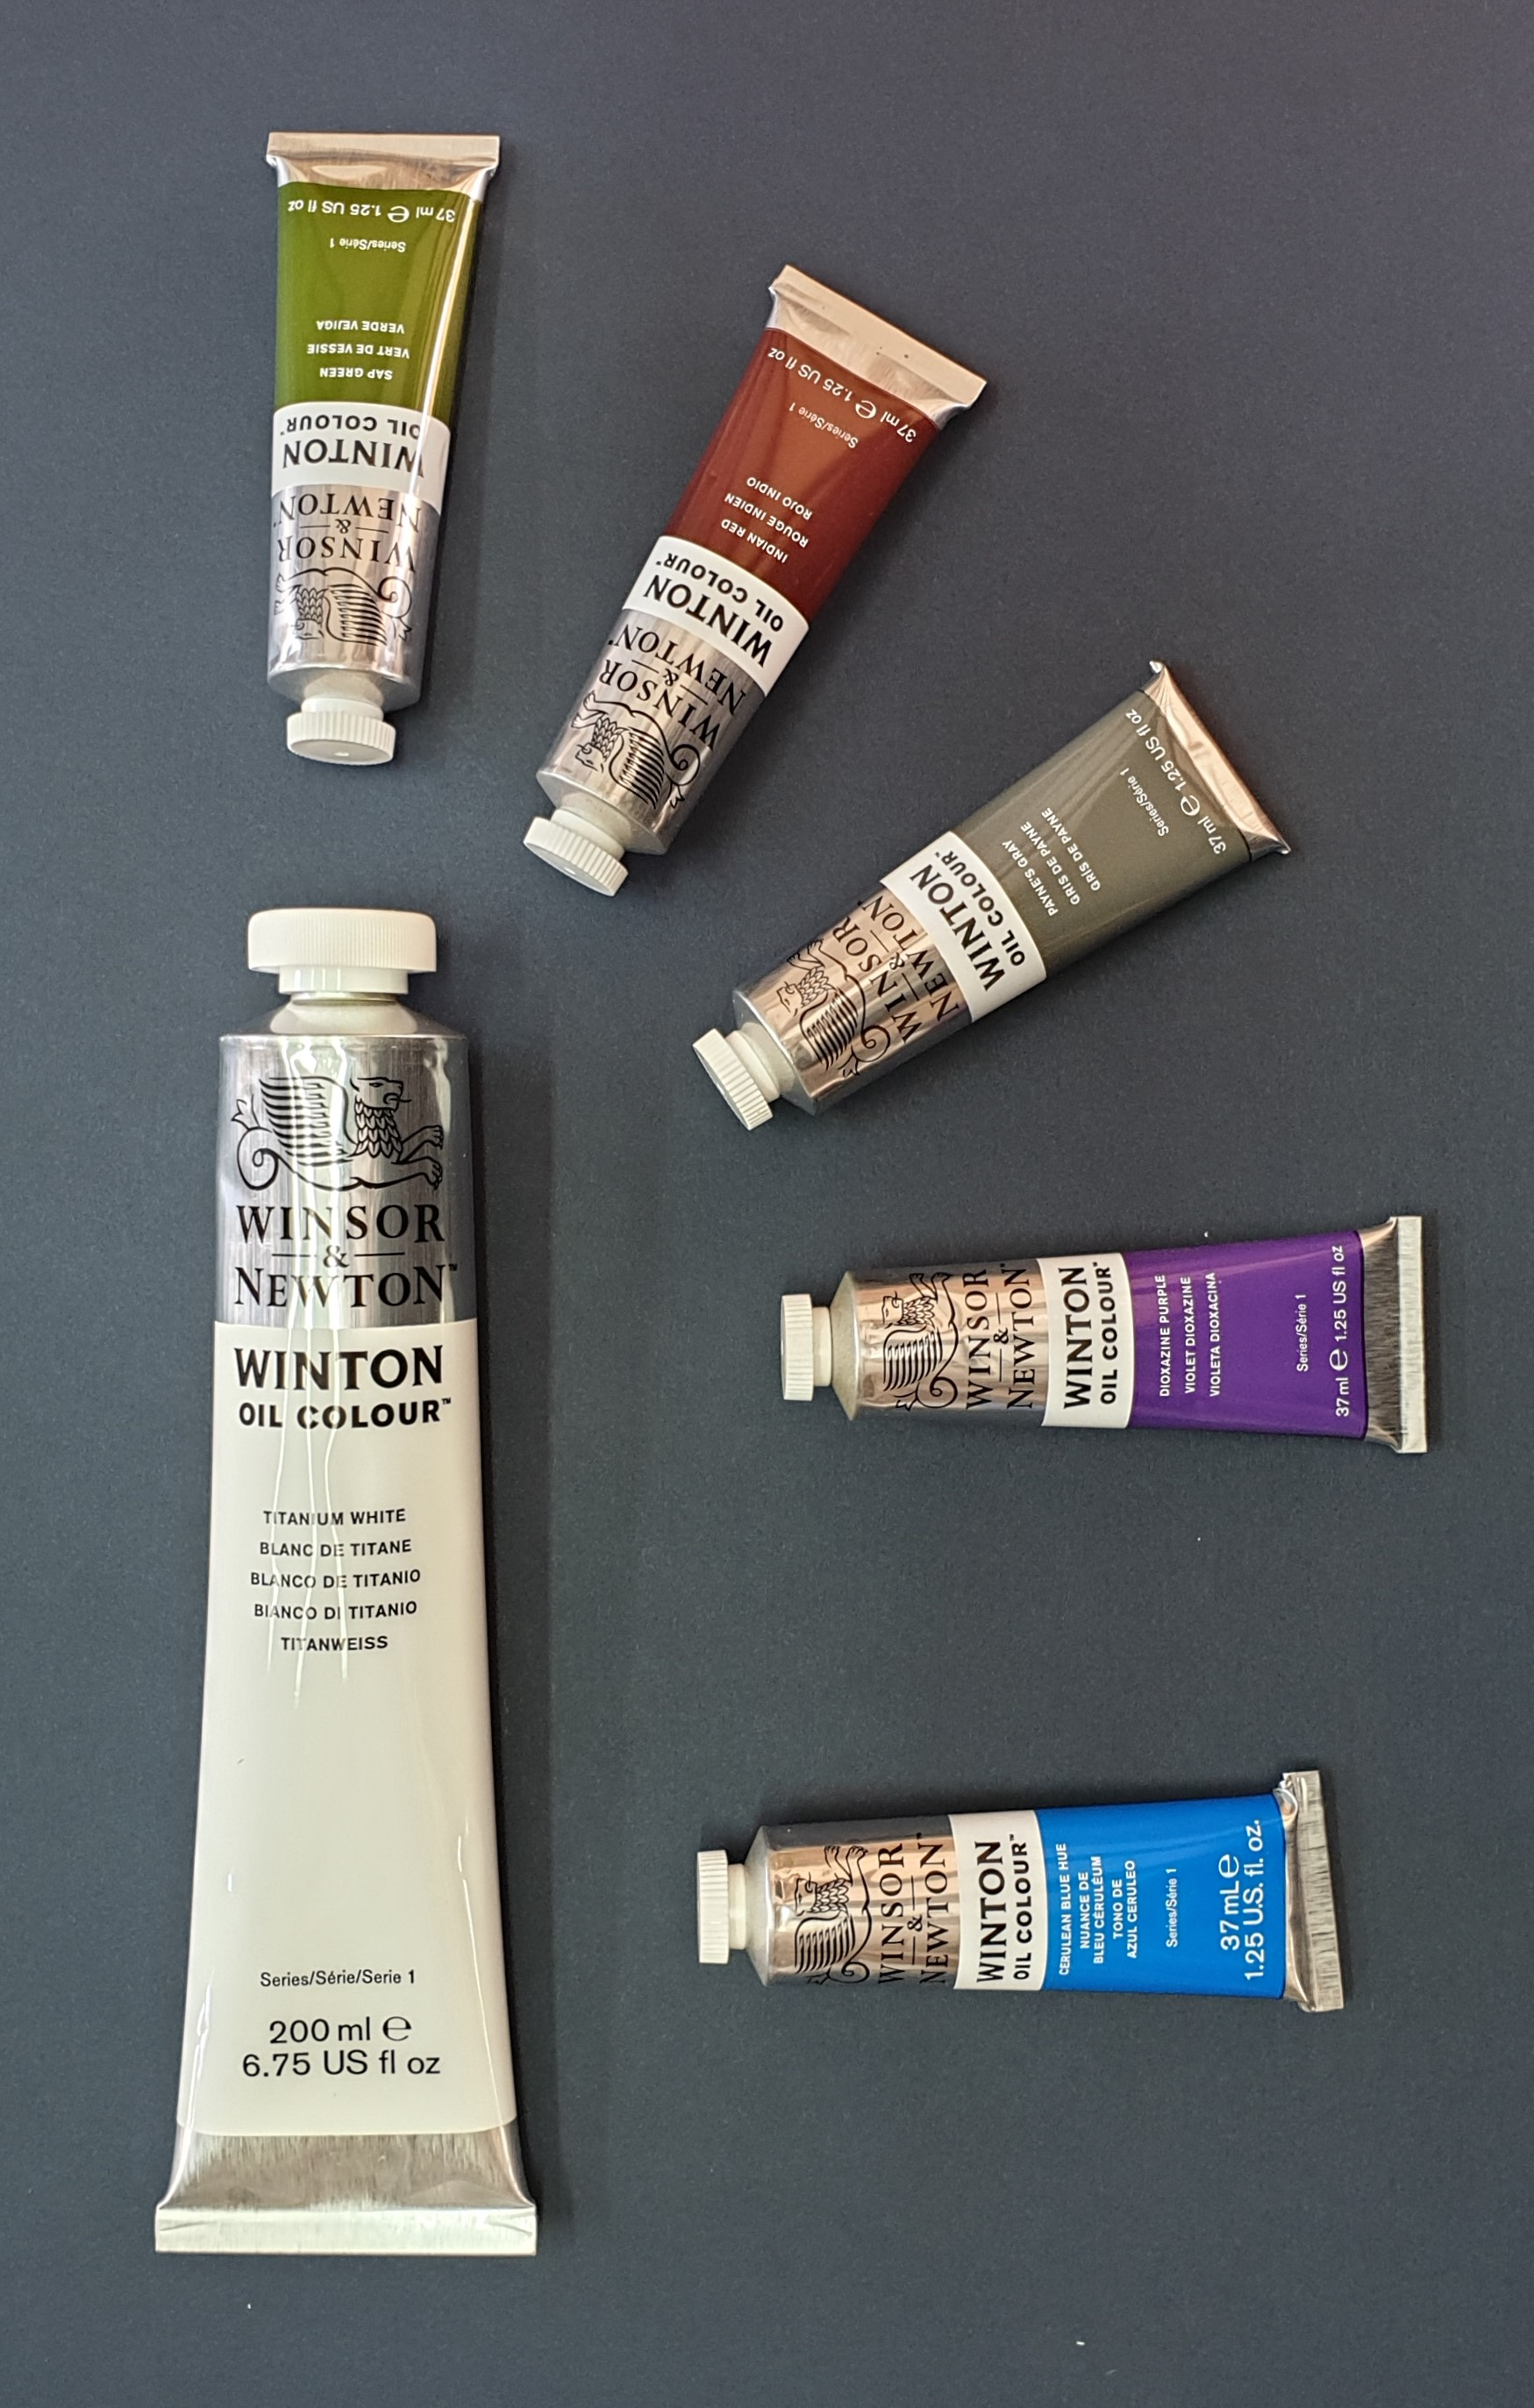 Call In To Stock Up On Your Paints Before The Price Increase.